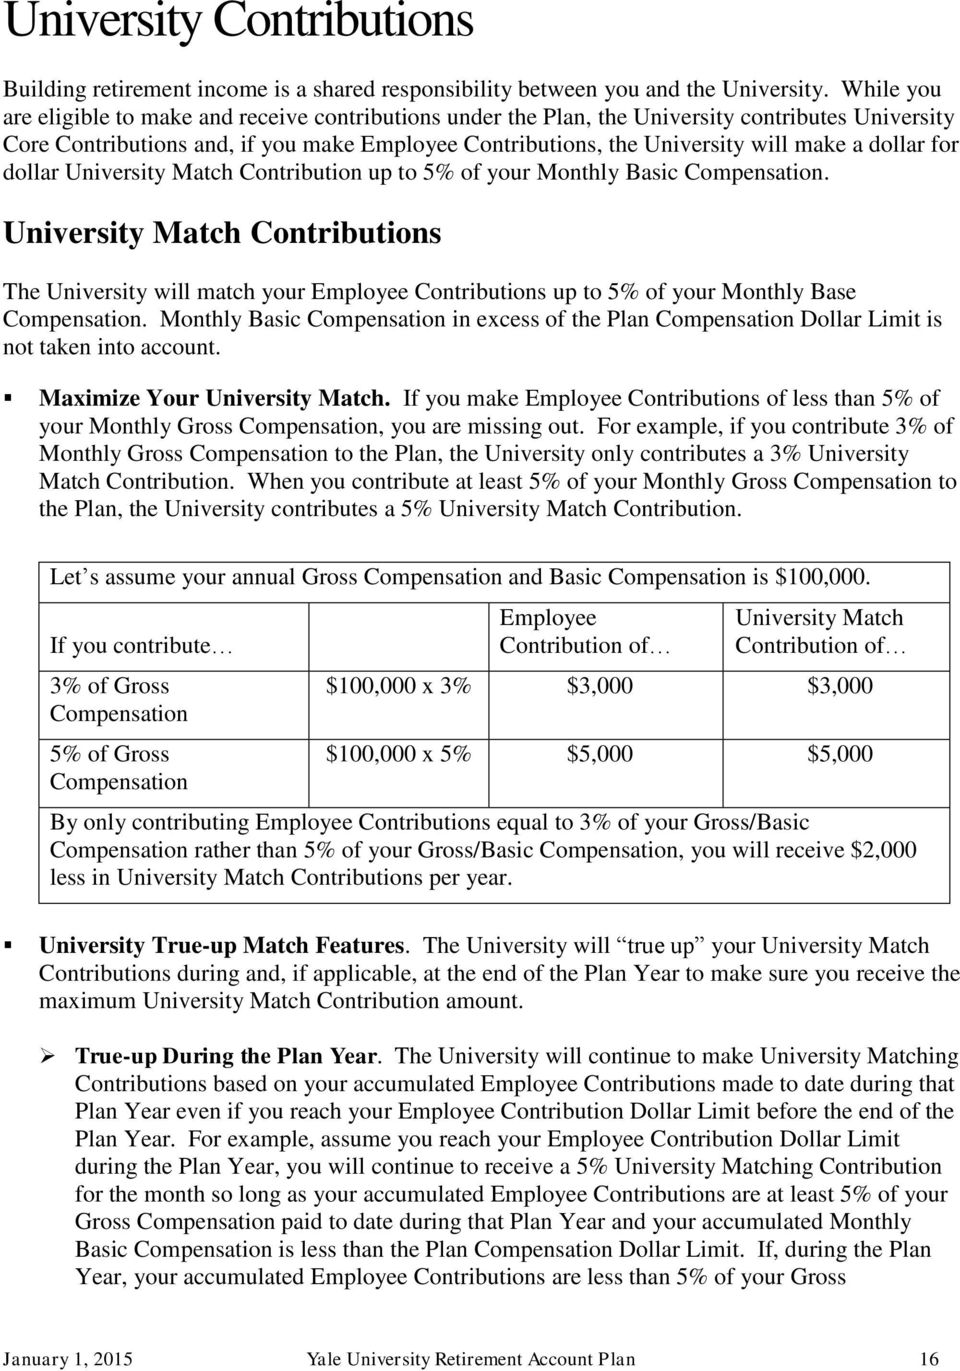 dollar for dollar University Match Contribution up to 5% of your Monthly Basic Compensation.